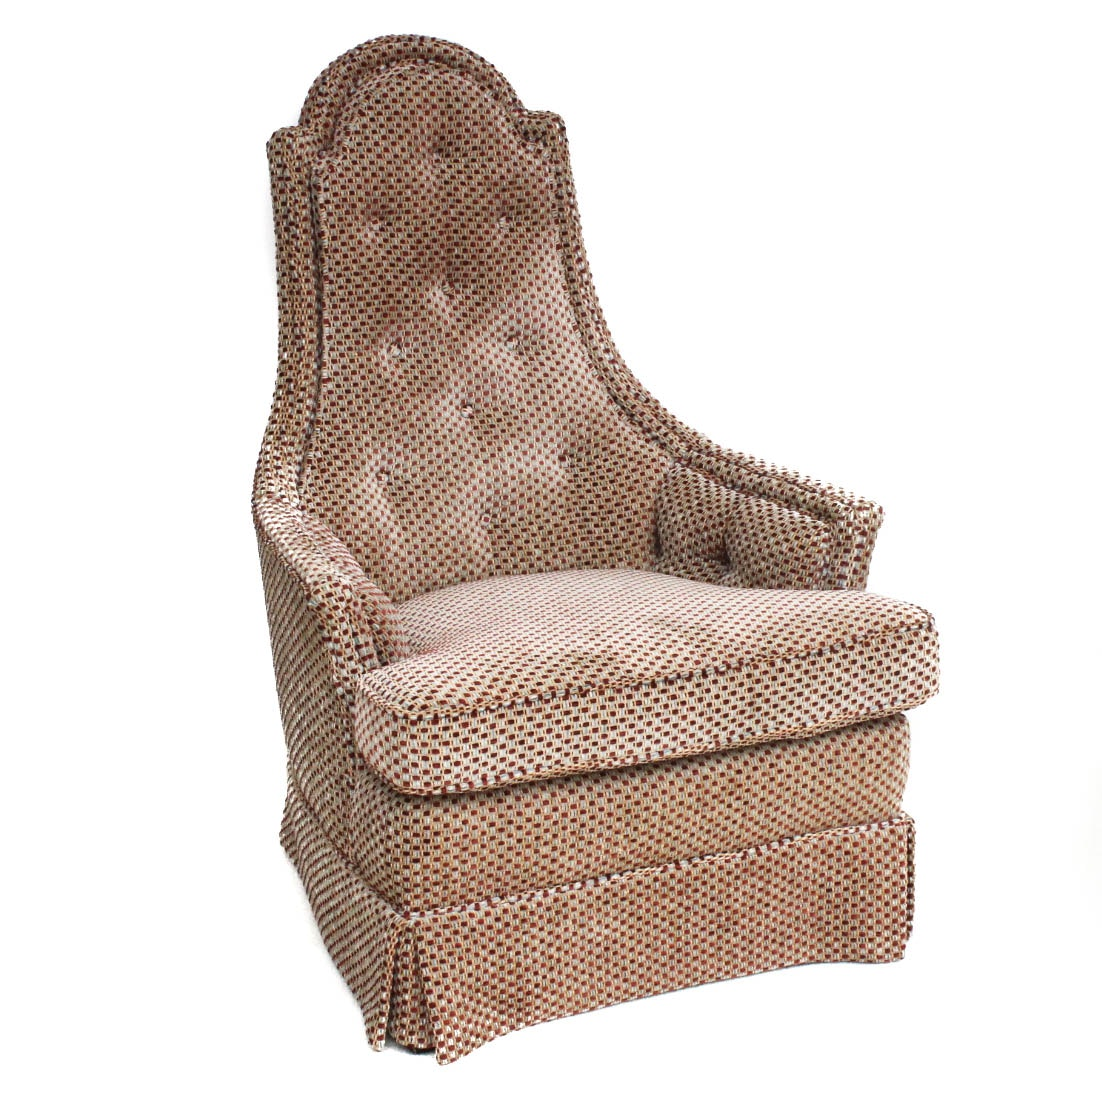 Vintage Custom Upholstered Accent Chair